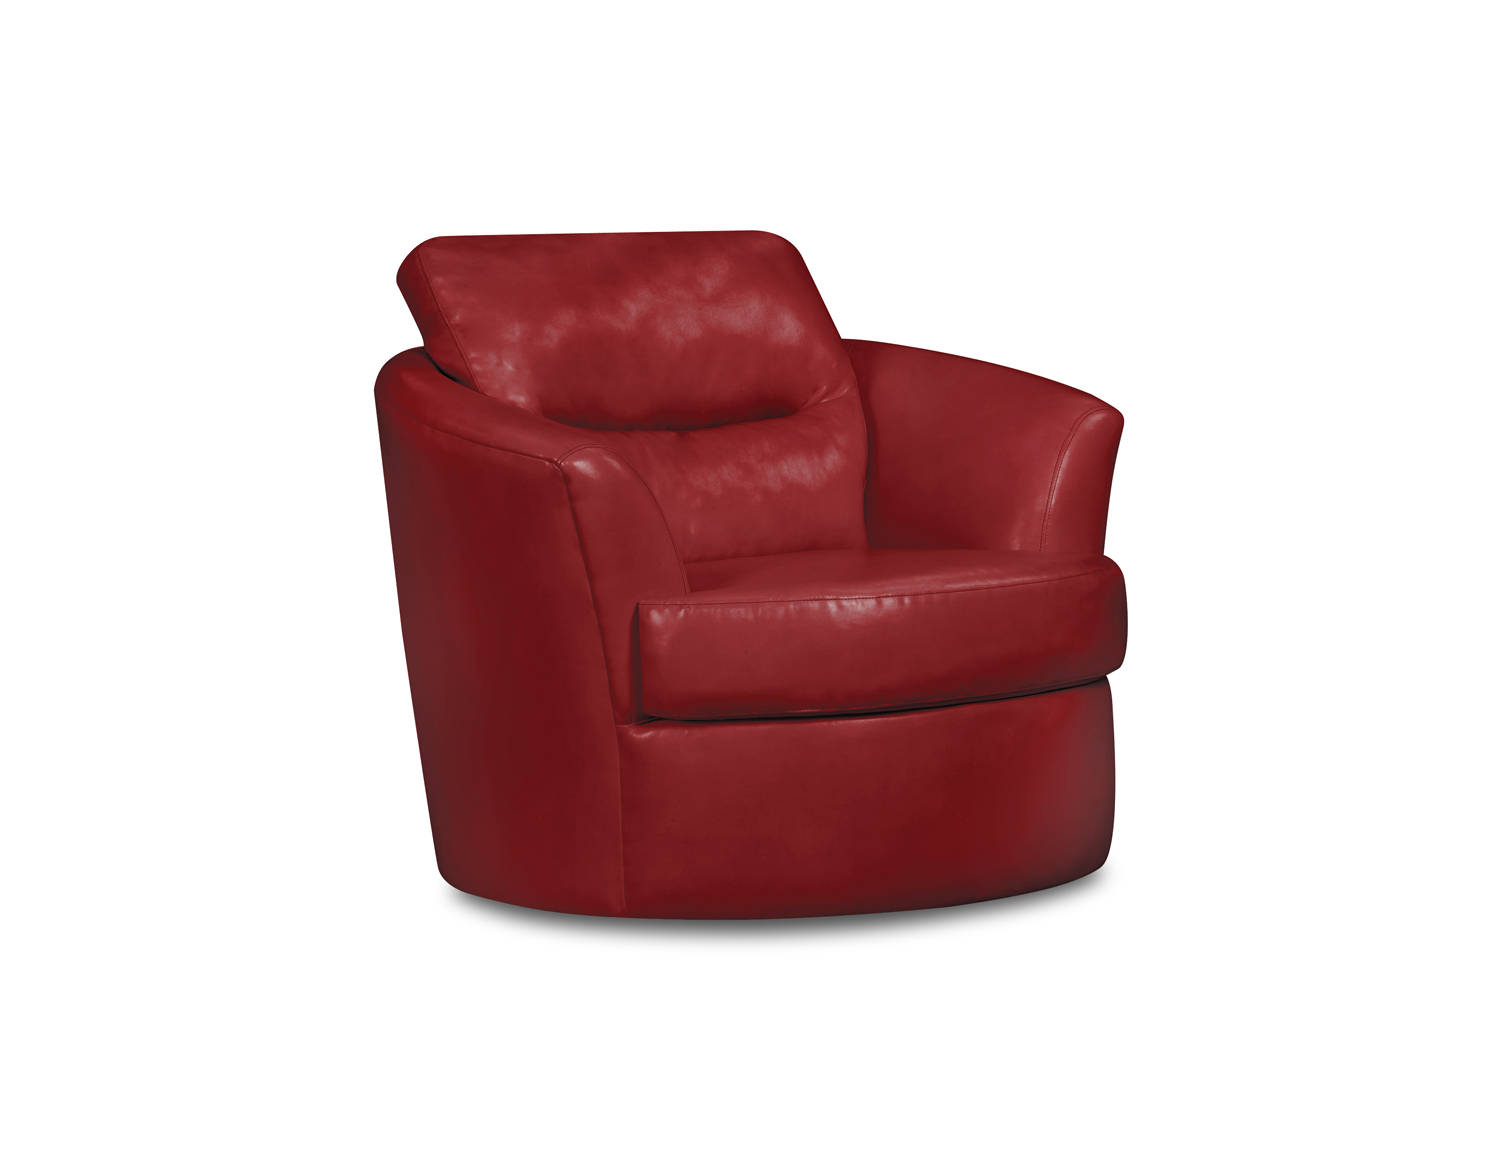 Red Swivel Chair Global Furniture Usa 9500 Swivel Chair Bonded Leather